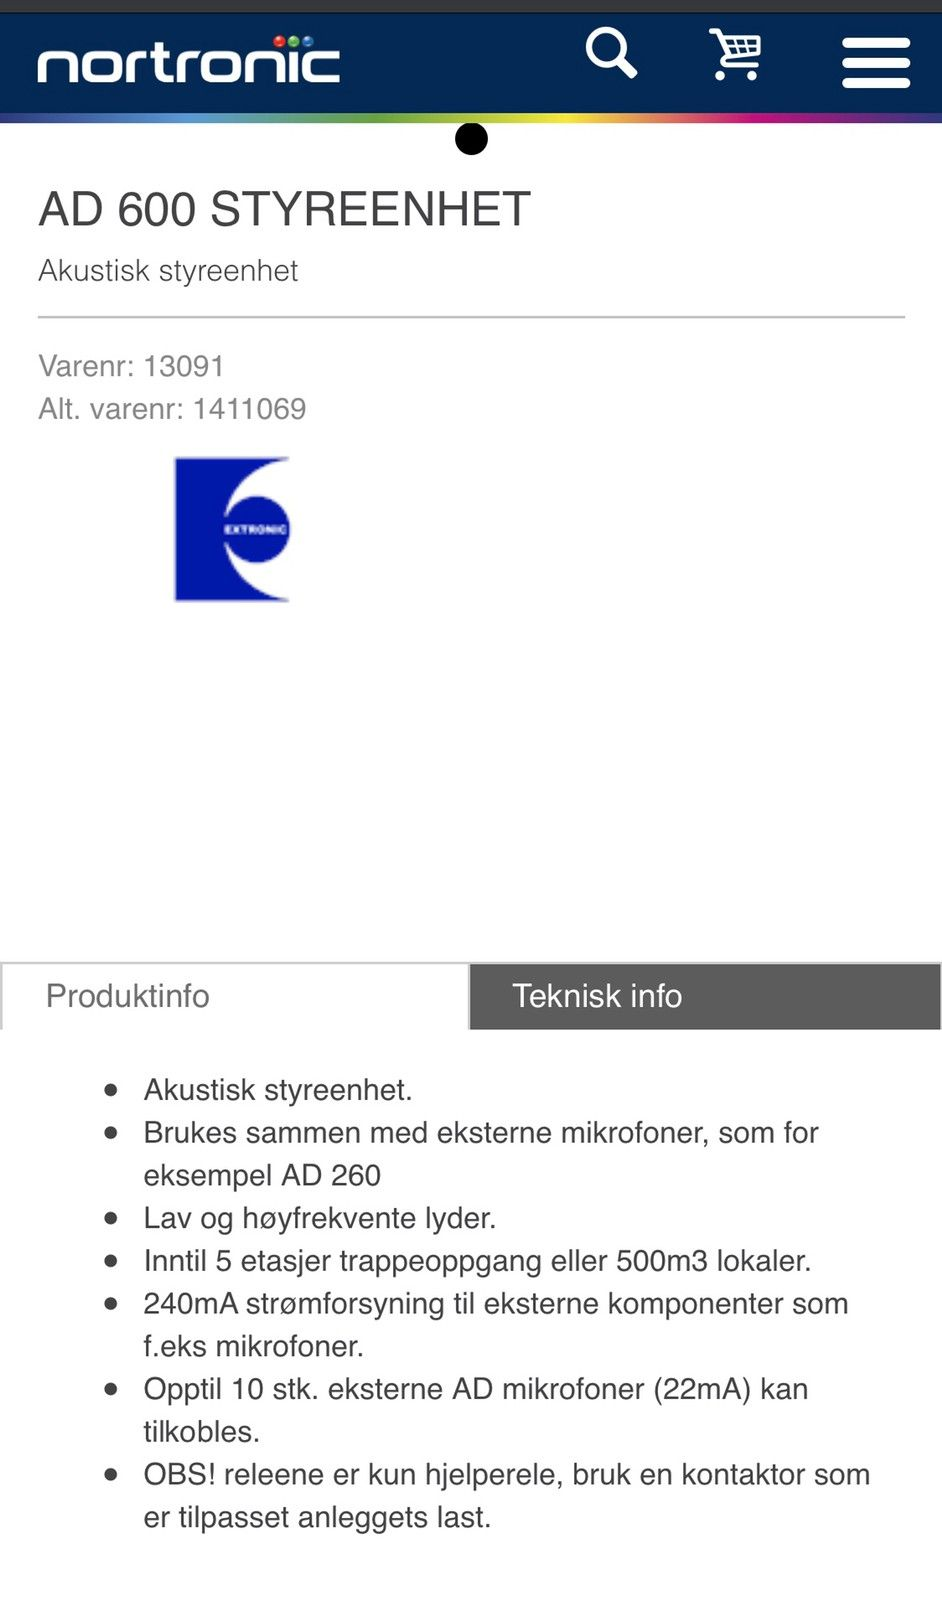 AD 600 STYREENHET Nortronic AS